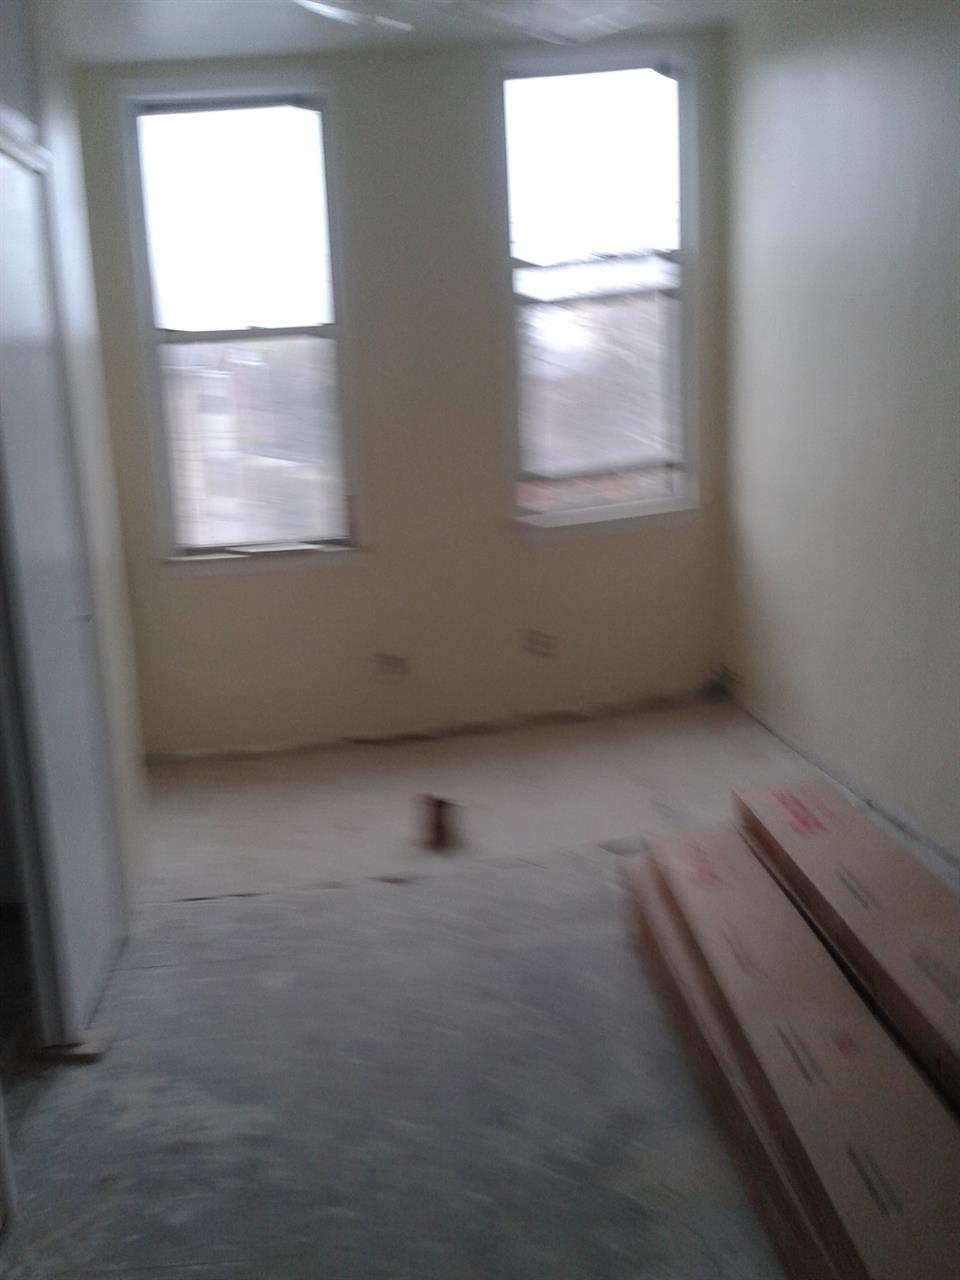 Additional photo for property listing at 12th Ave And 65th Strret  Brooklyn, New York 11219 United States